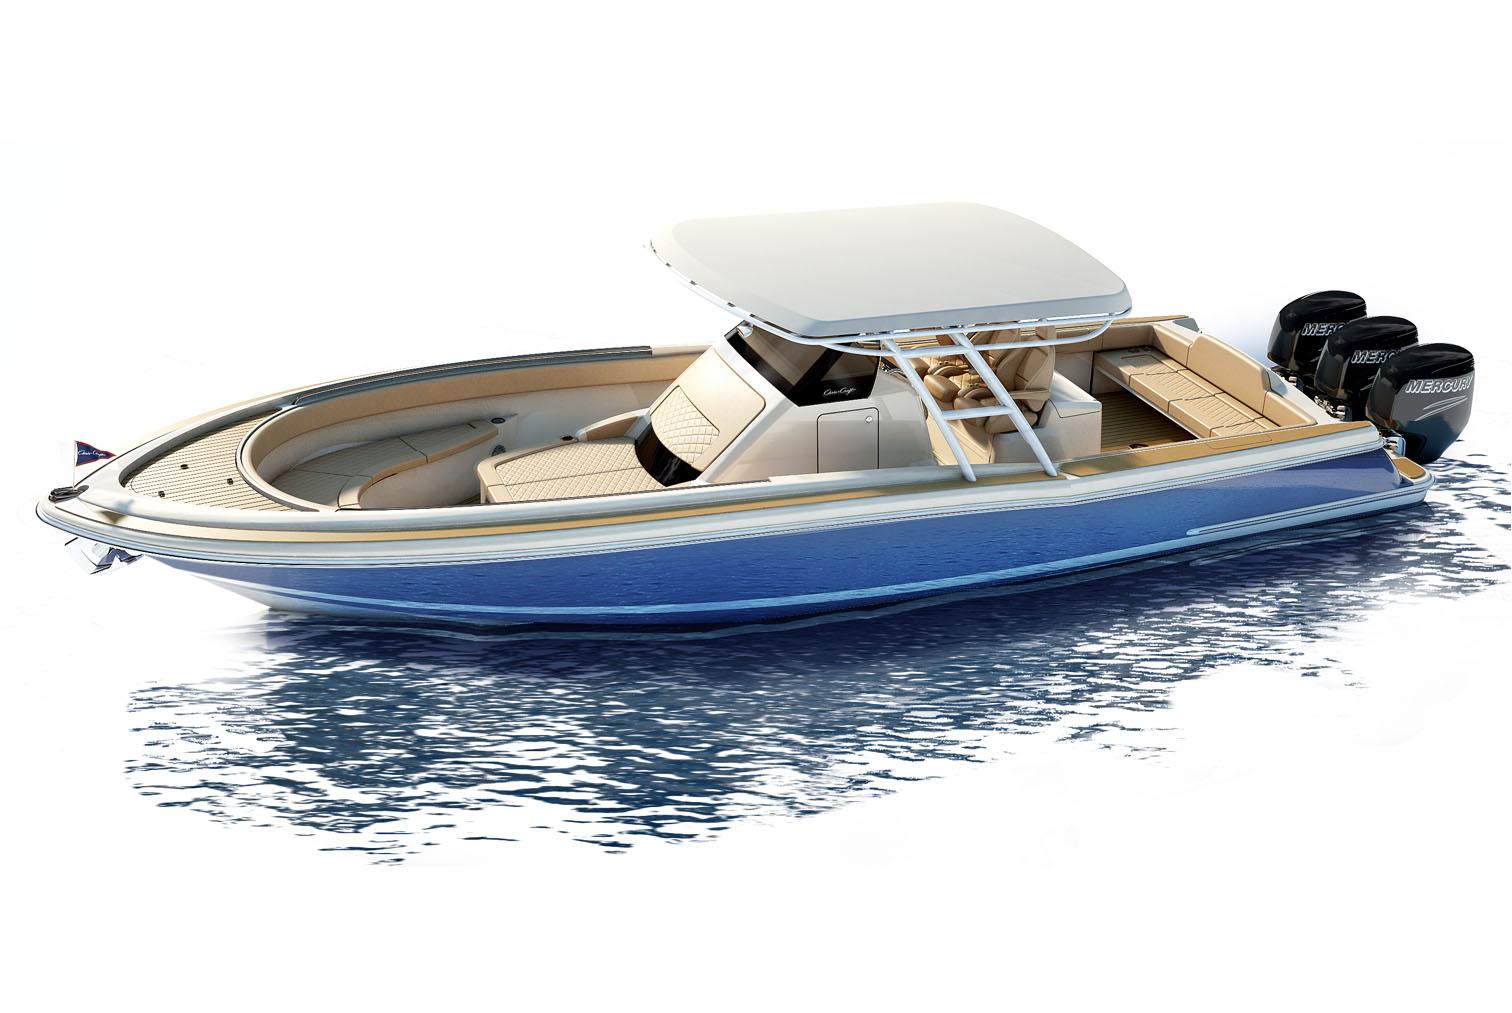 rc boat manufacturers with Chris Craft Catalina 34 Design Revealed Before Fort Lauderdale Debut 40673 on 231265709170 as well Boat Plan Rc as well Sailboat Plans likewise Inboard water jet boat engine small jet engine mini jet engine sale jet ski engine marine rc jet engine besides paring Sterndrive Io Vs Inboard.